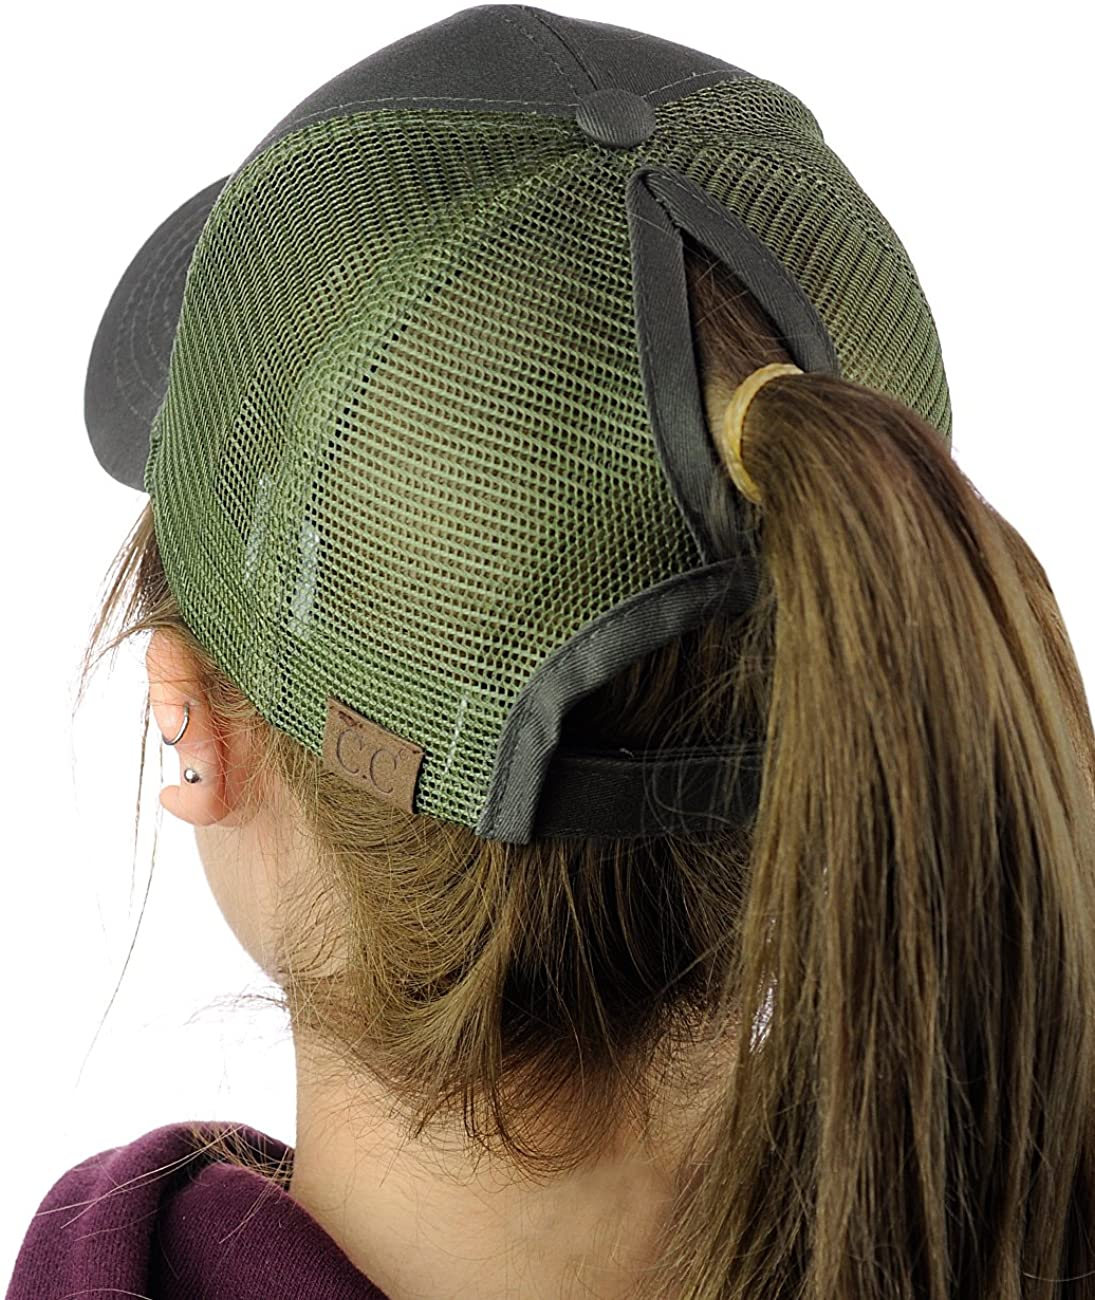 C.C Ponycap Messy High Bun Ponytail Adjustable Mesh Trucker Baseball Cap Hat